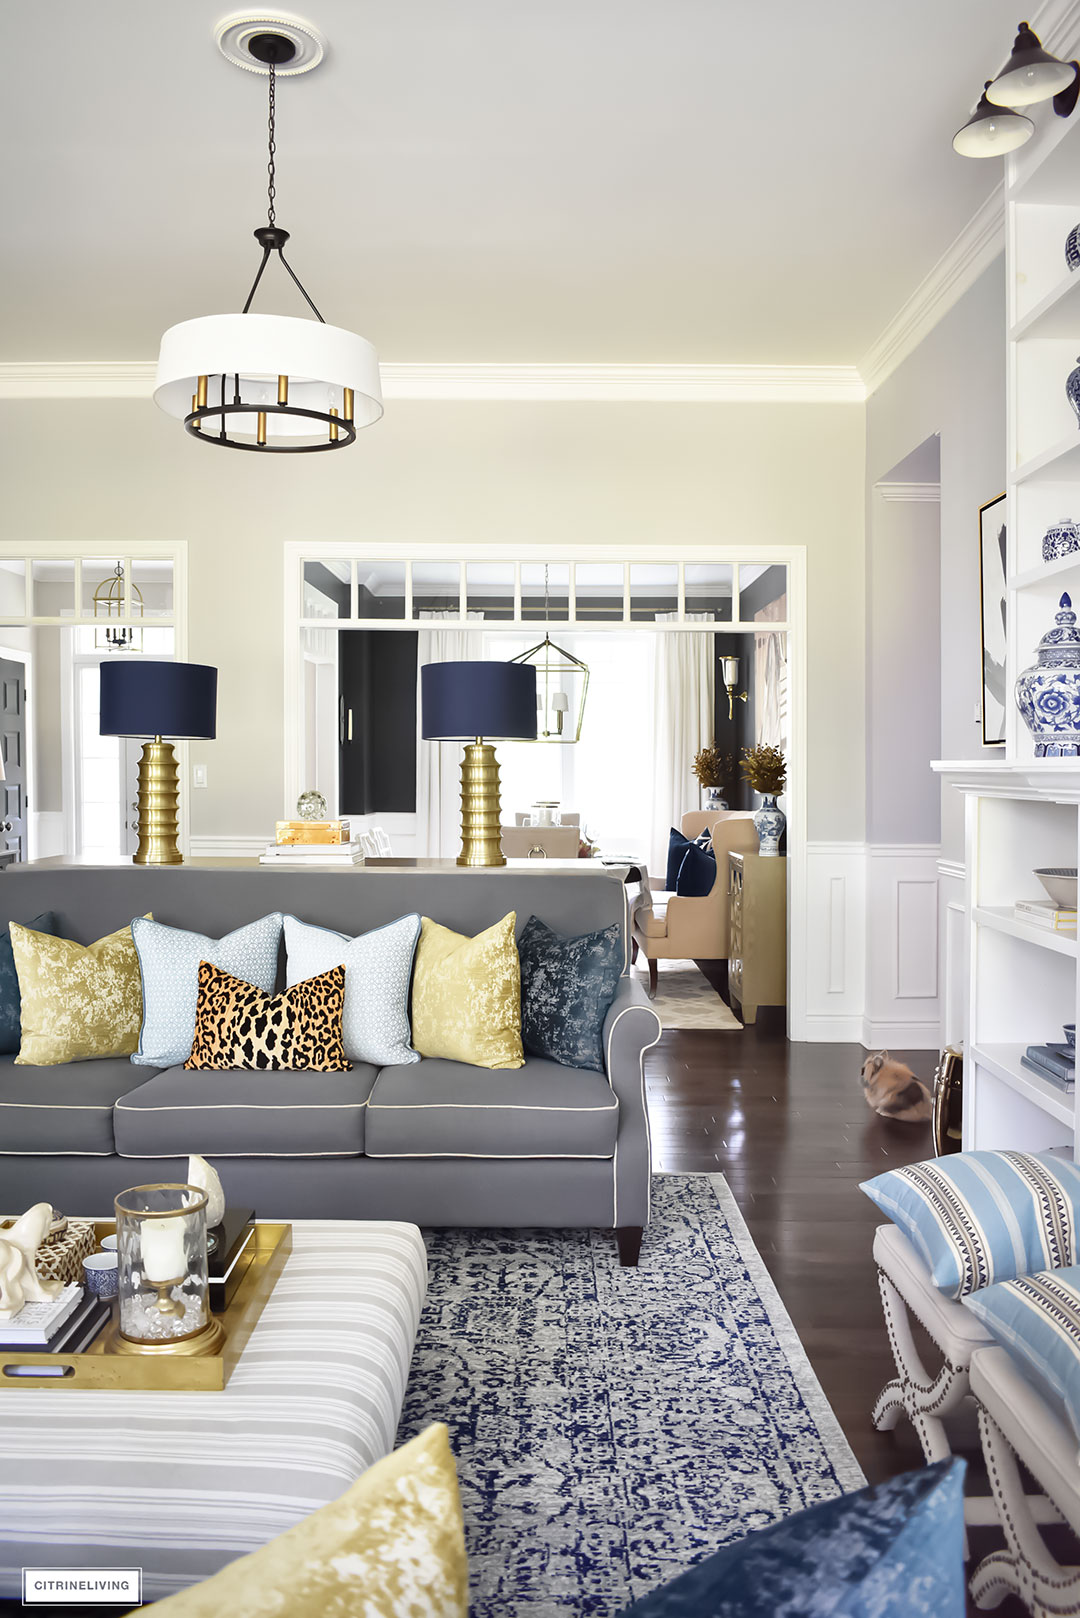 Fall Home Tour with navy and gold velvet pillows and accents. Brass lighting, leopard pillow, drum shade chandelier.